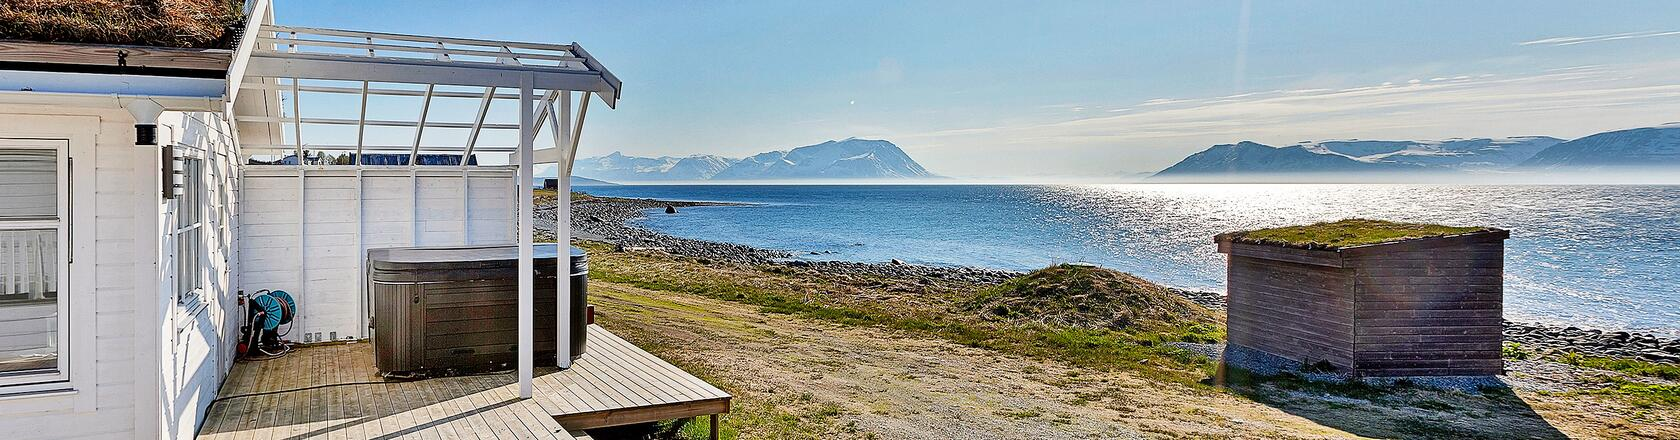 Helgeland - Nordland in Norway — Rent a holiday home with DanCenter